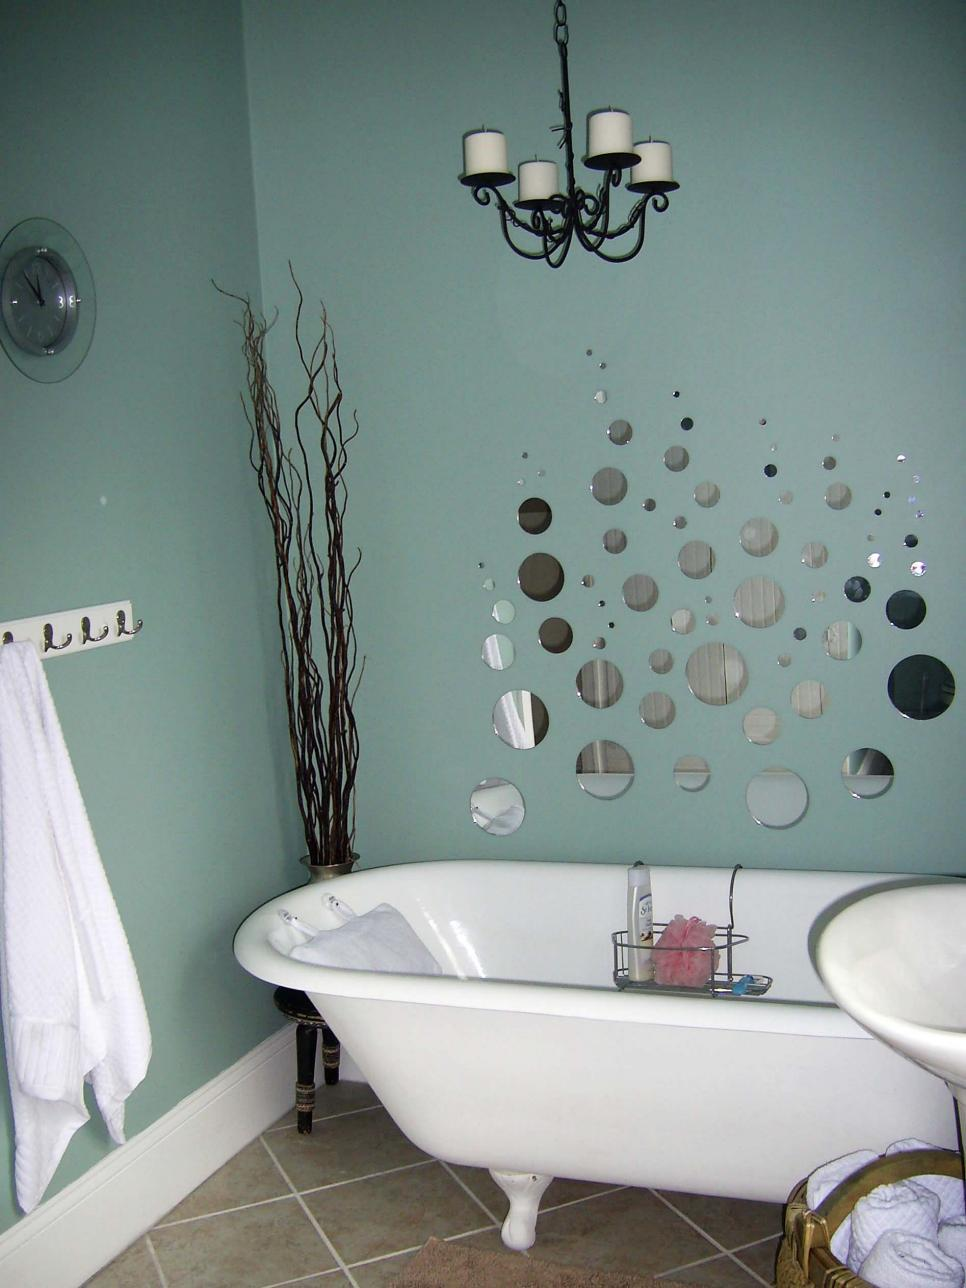 Bathrooms On A Budget Our Favorites From Rate My Space DIY - Bathroom accessories ideas for small bathroom ideas